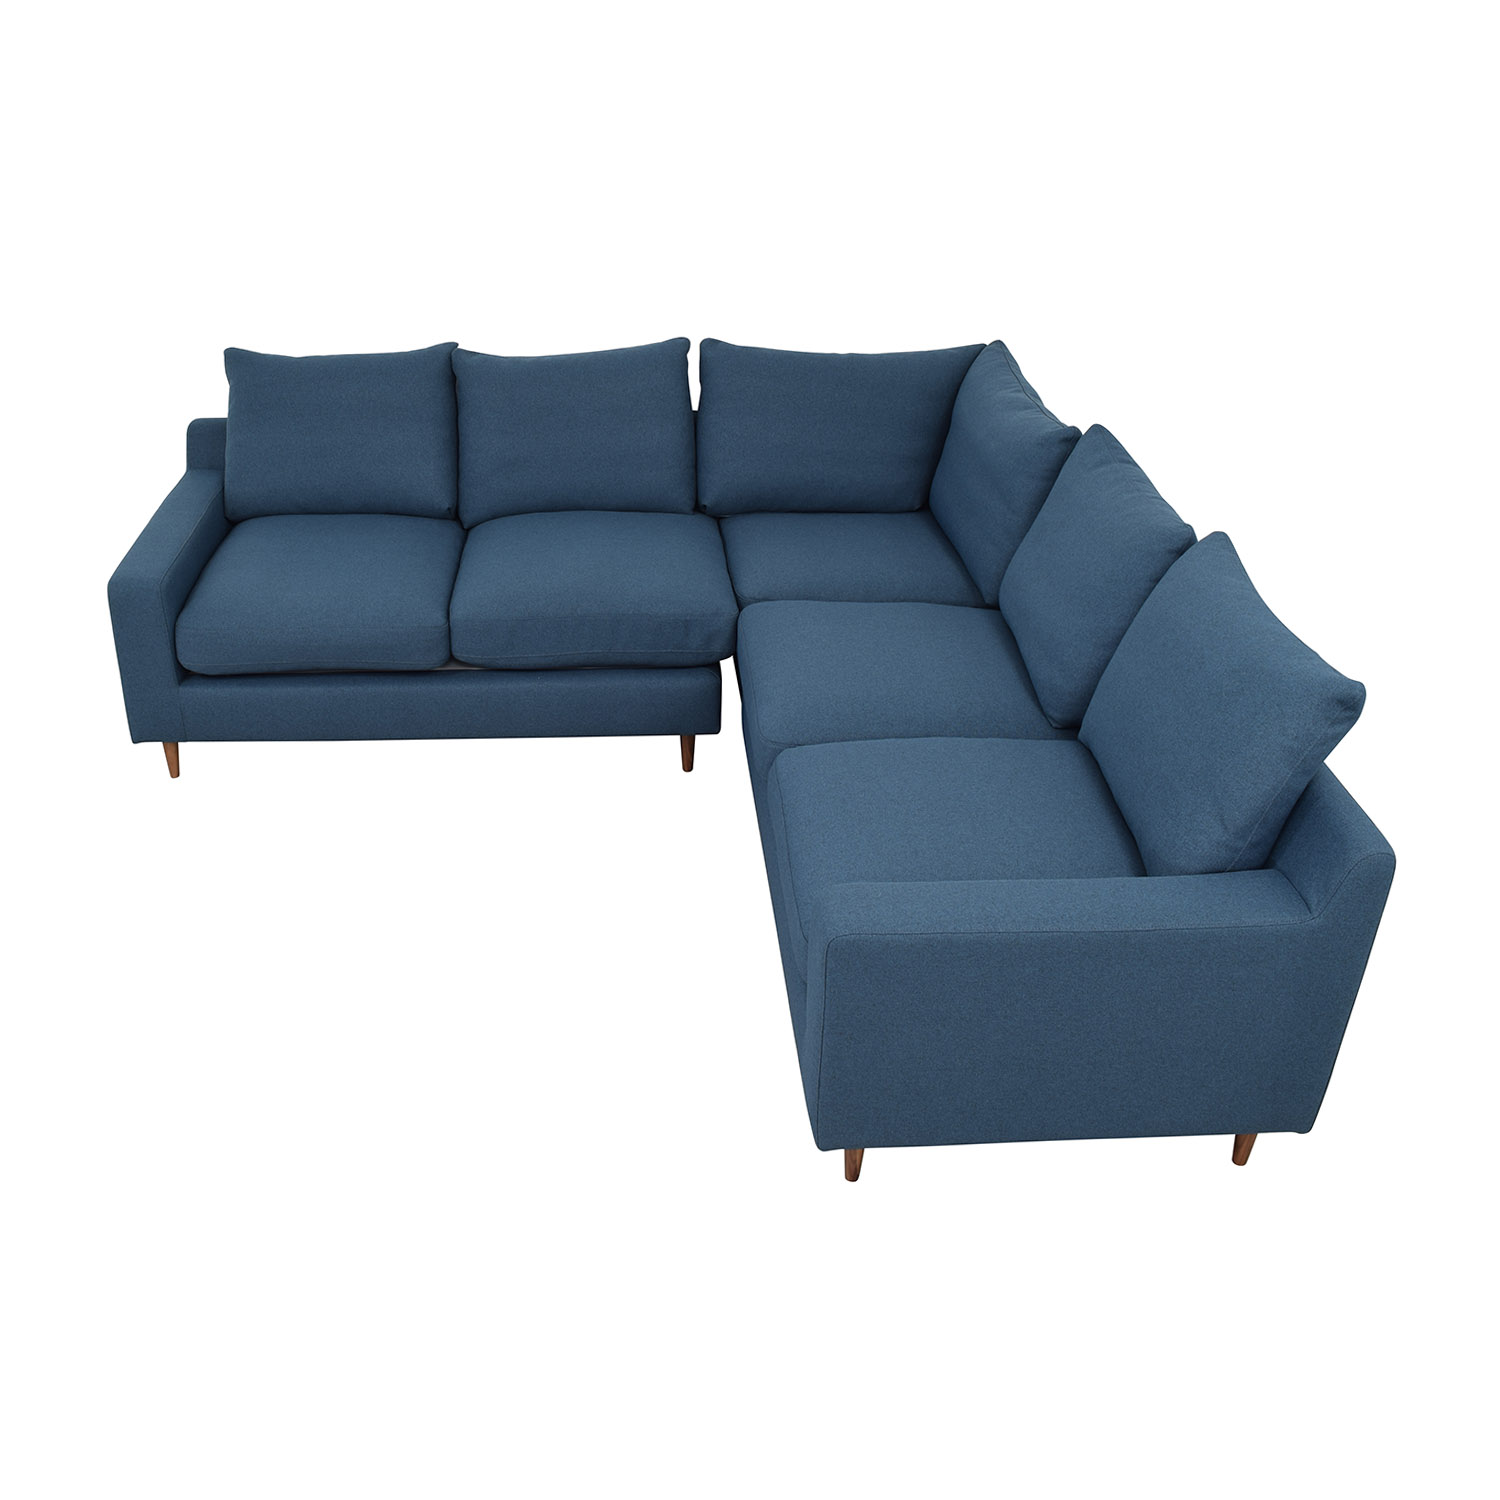 Interior Define Sloan Blue L-Shaped Sectional used